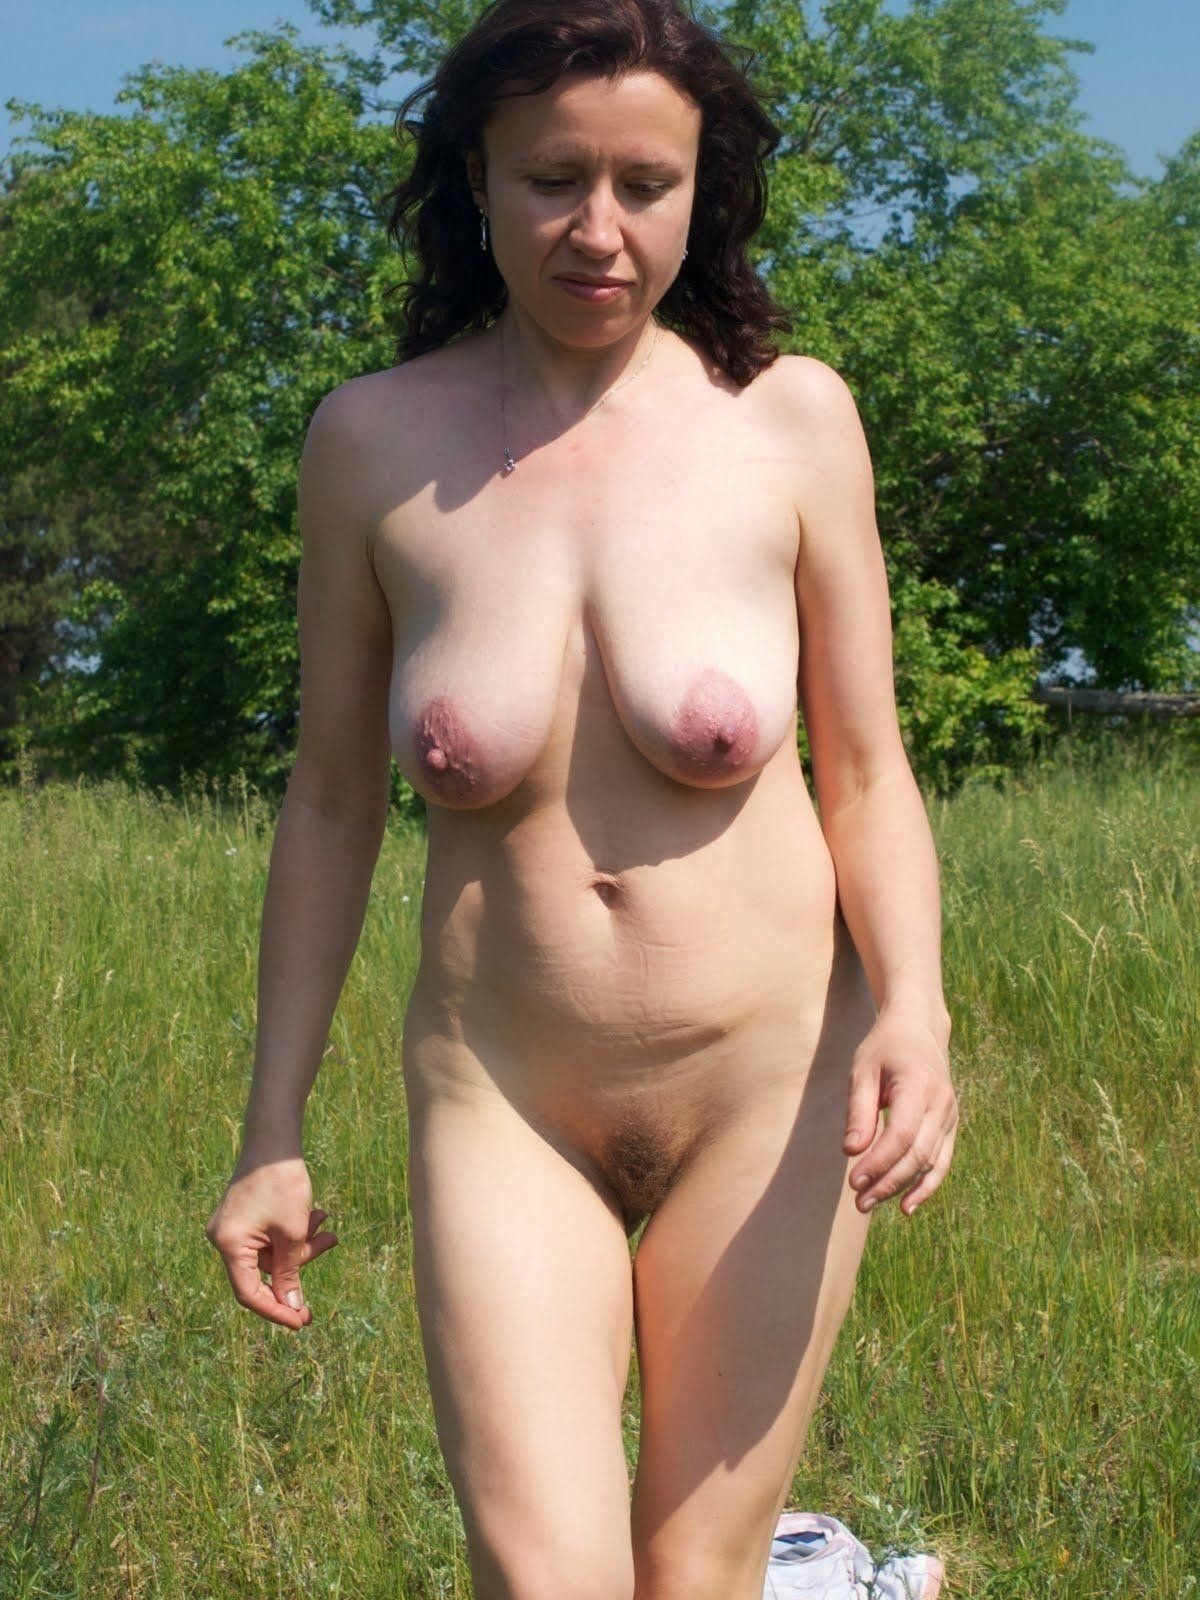 Outdoor nudist